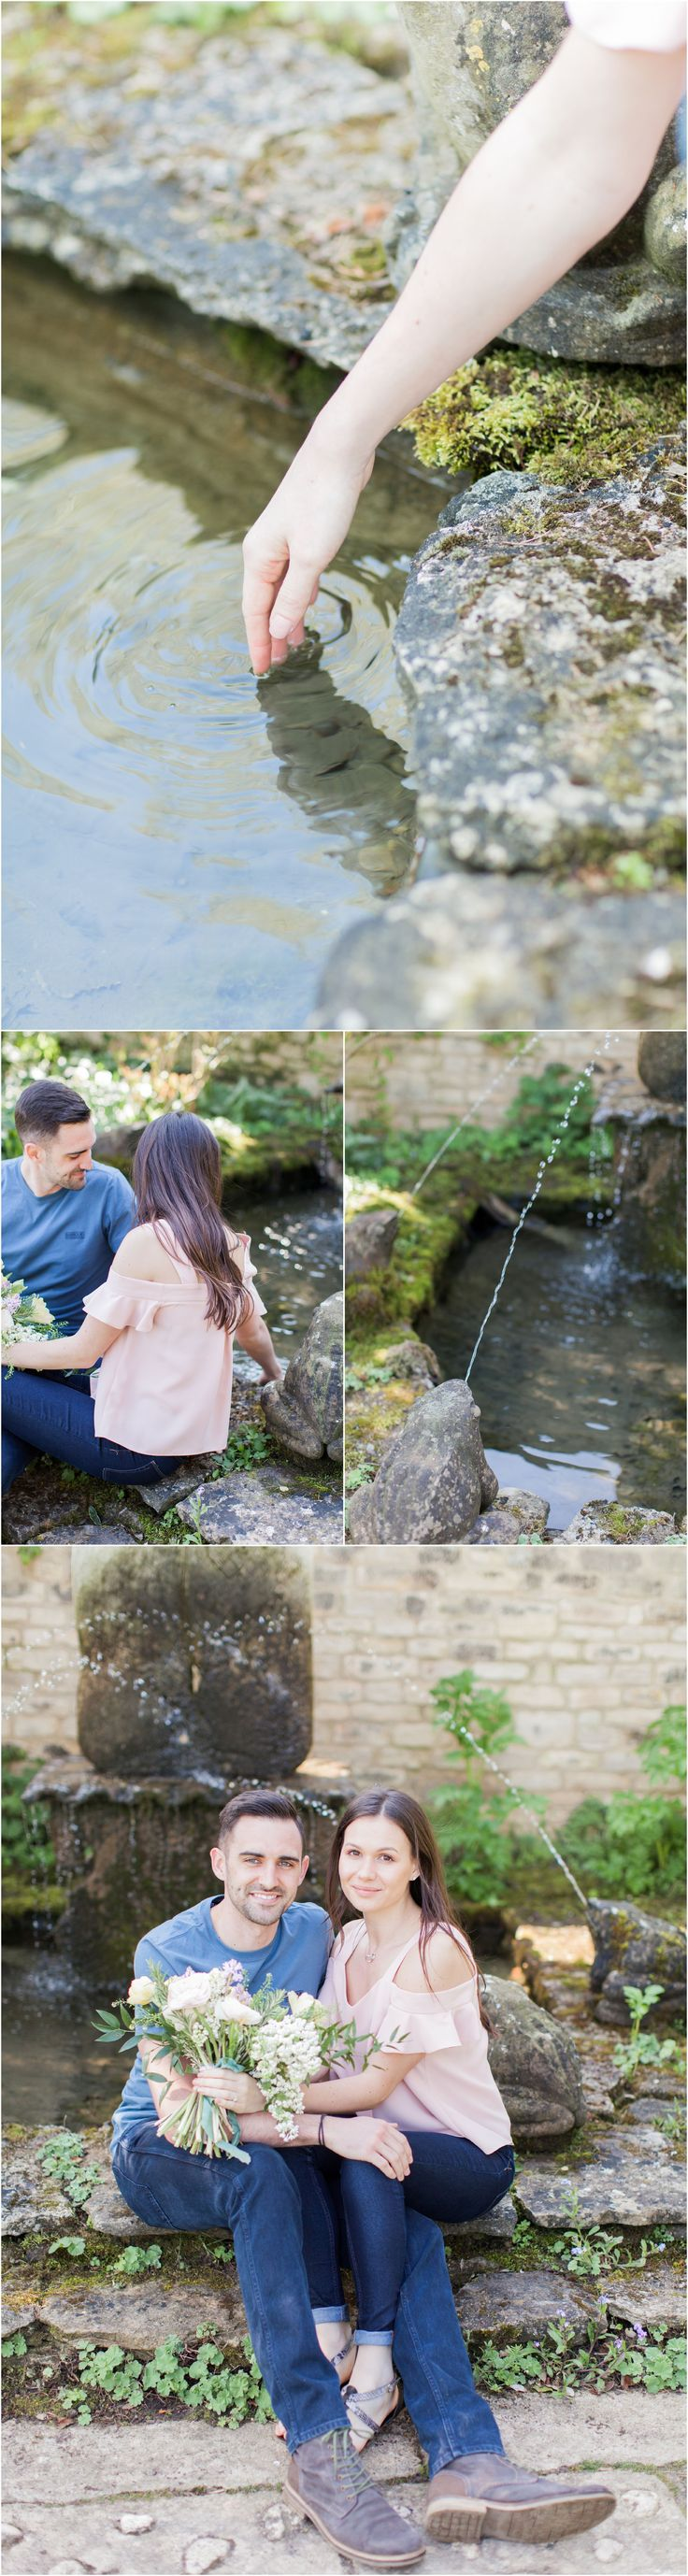 Bibury Cotswolds engagement photoshoot, light and airy fine art photography, Bowtie and Belle Photography, Barnsley House